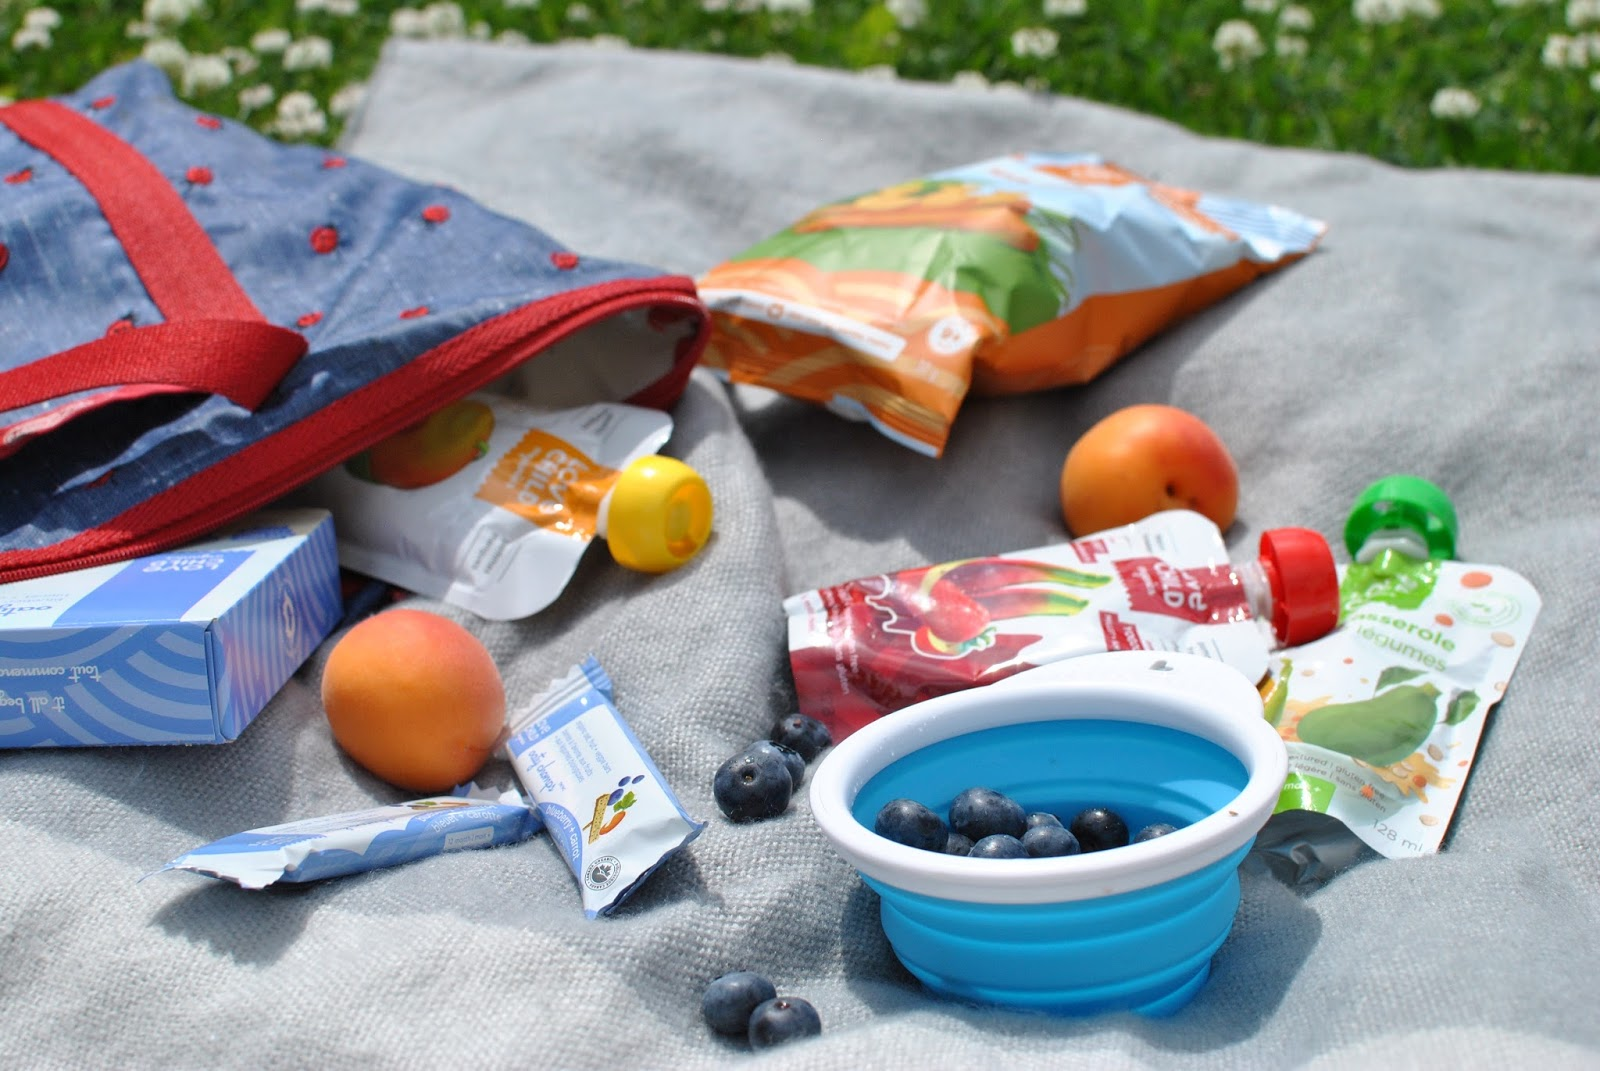 Mamahood: Road Trip Essentials for Babies and Toddlers